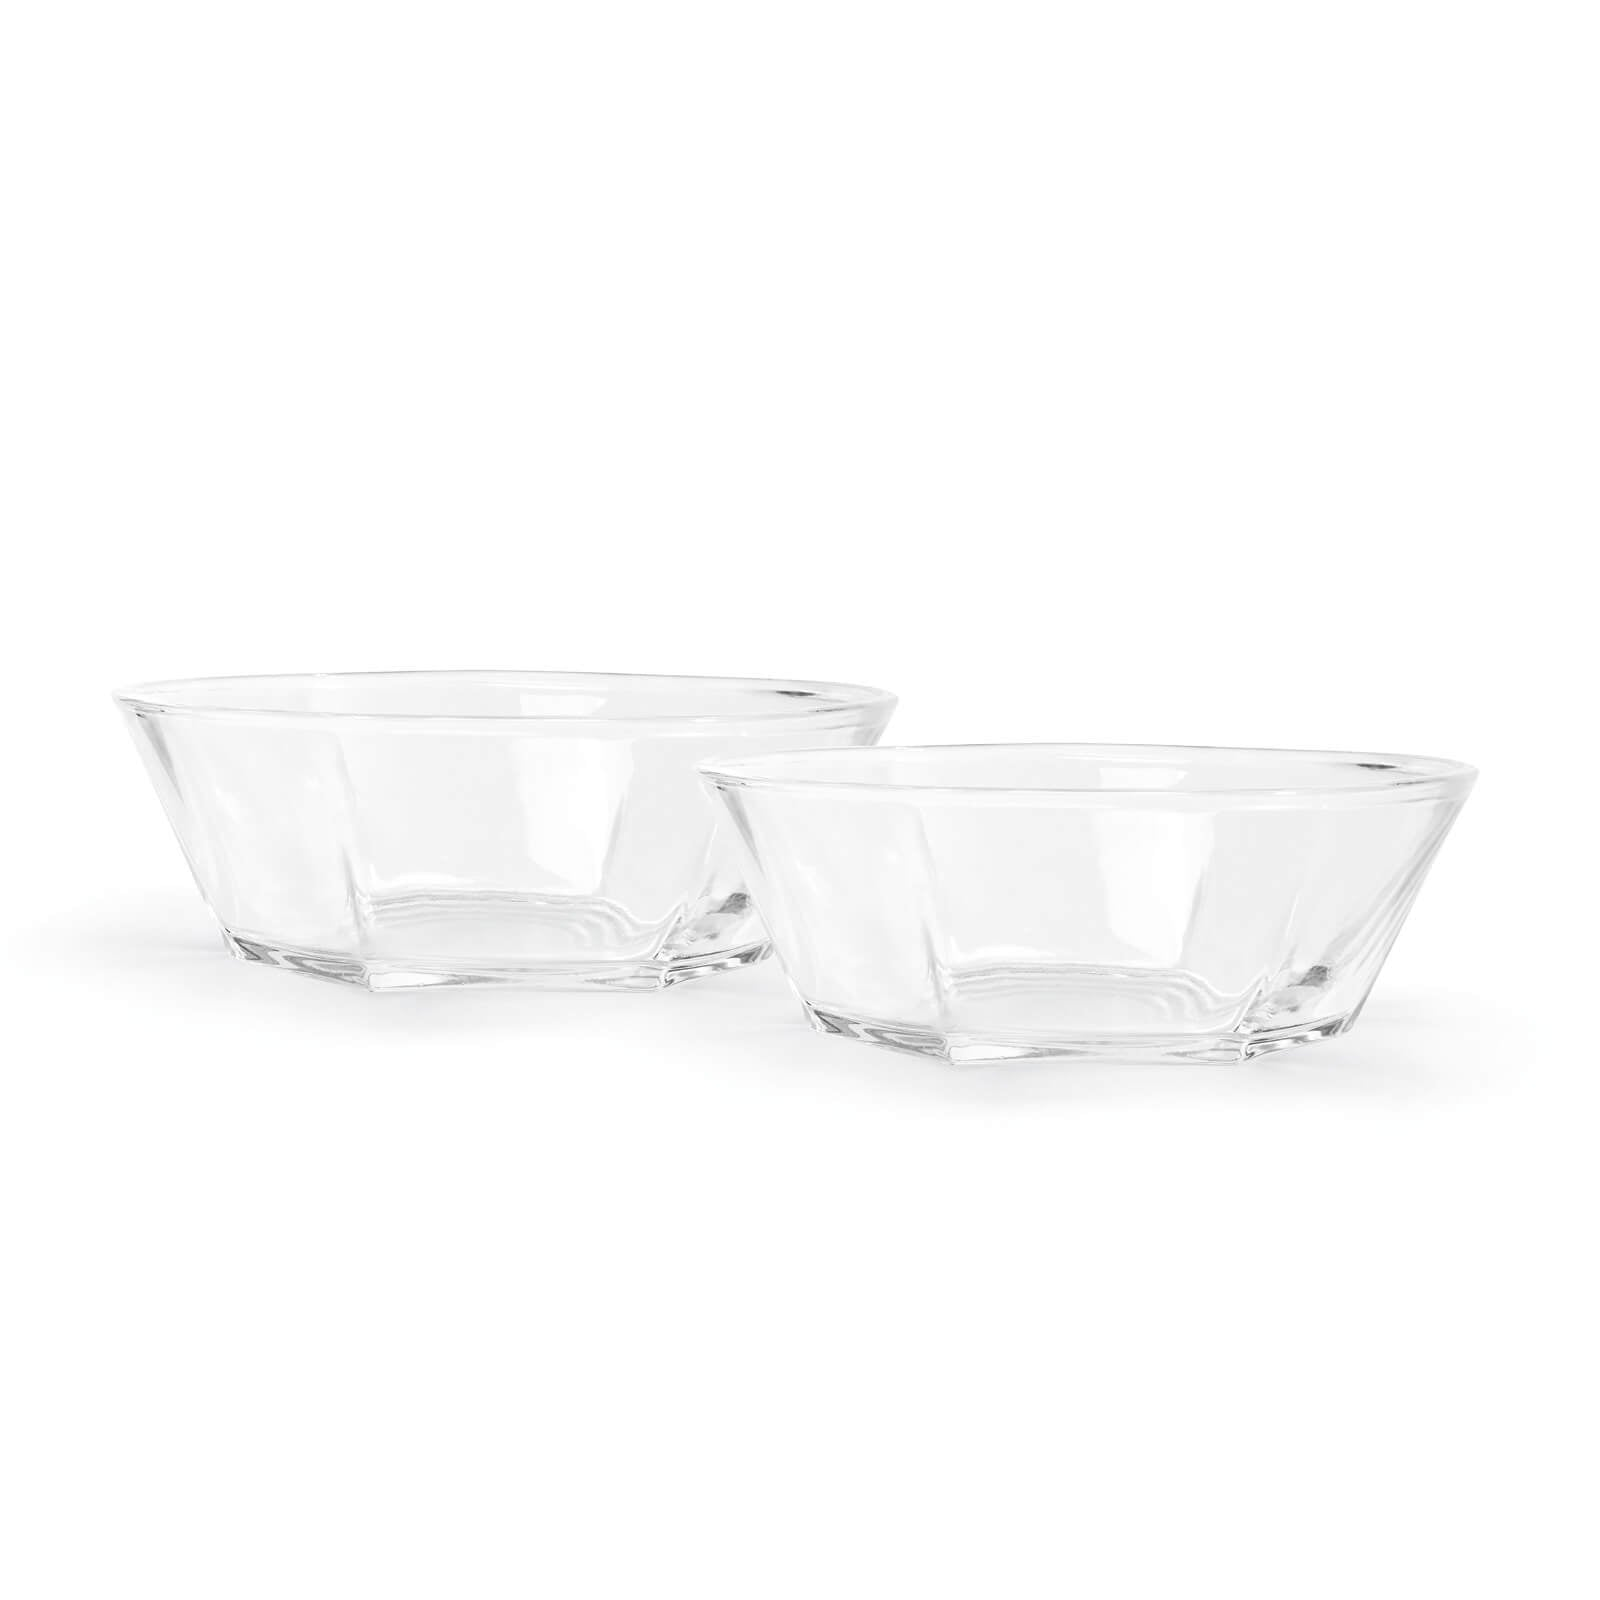 Lucent Bowl - Set of 2